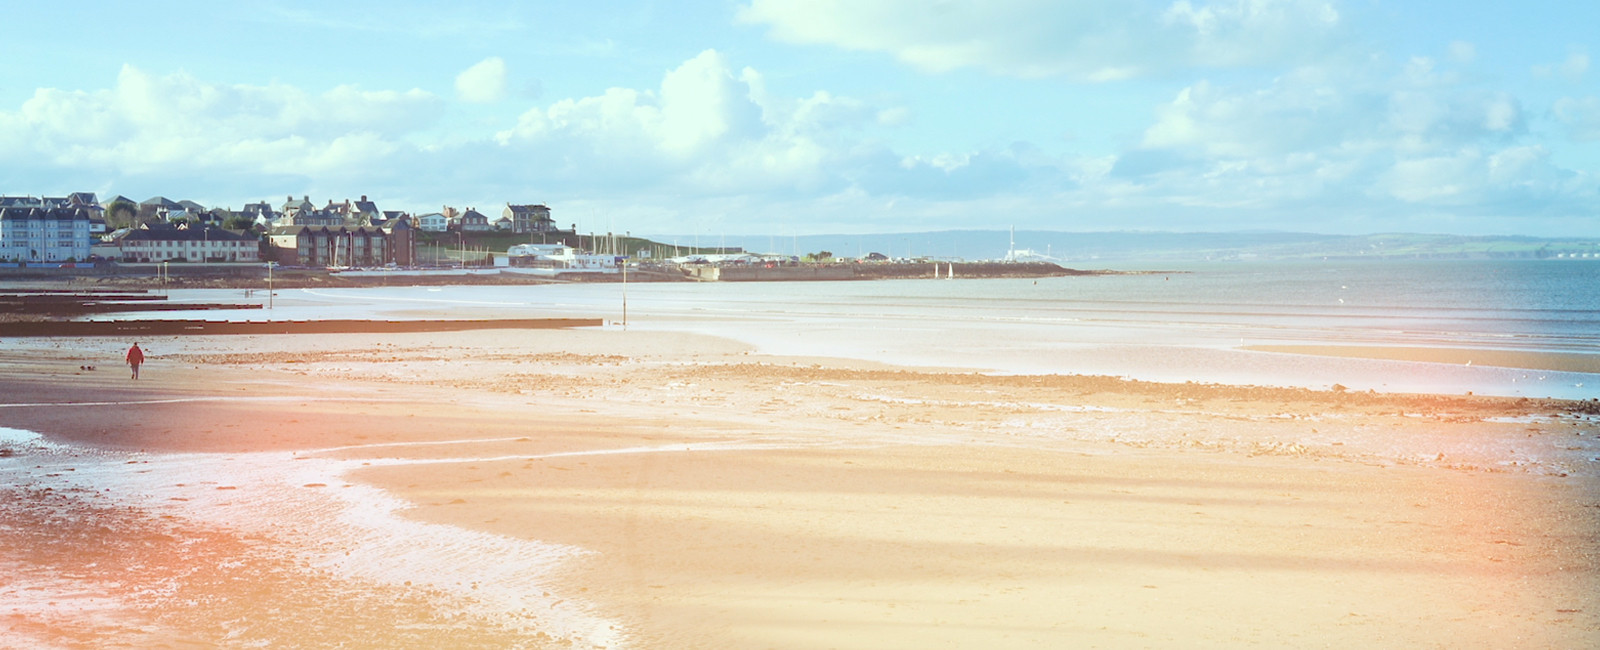 Ards & North Down Borough Council: Bangor by the Sea promo film